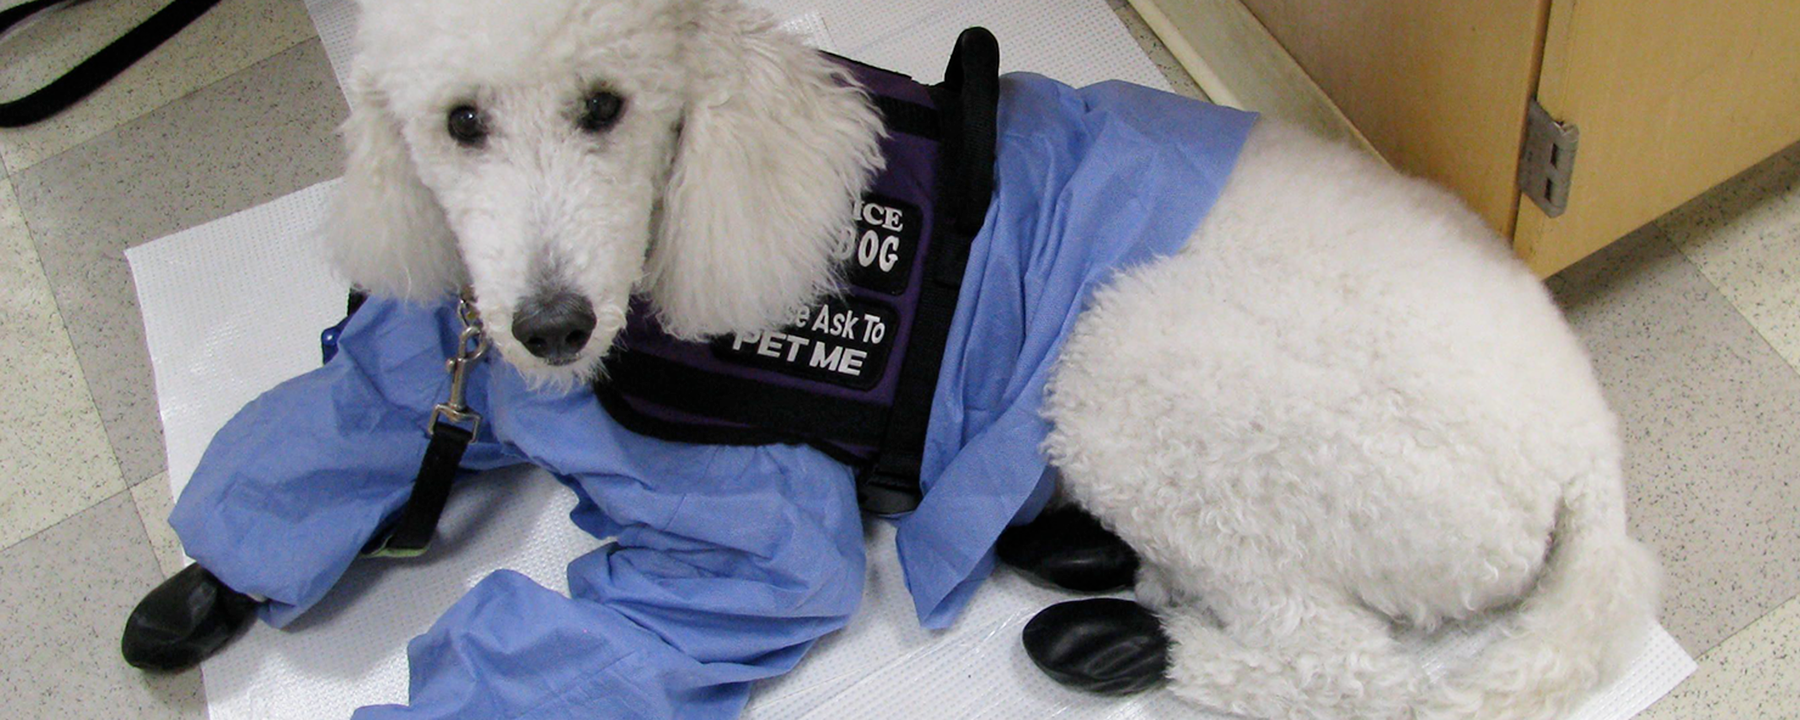 Infographic: Welcoming Service Dogs into the Lab